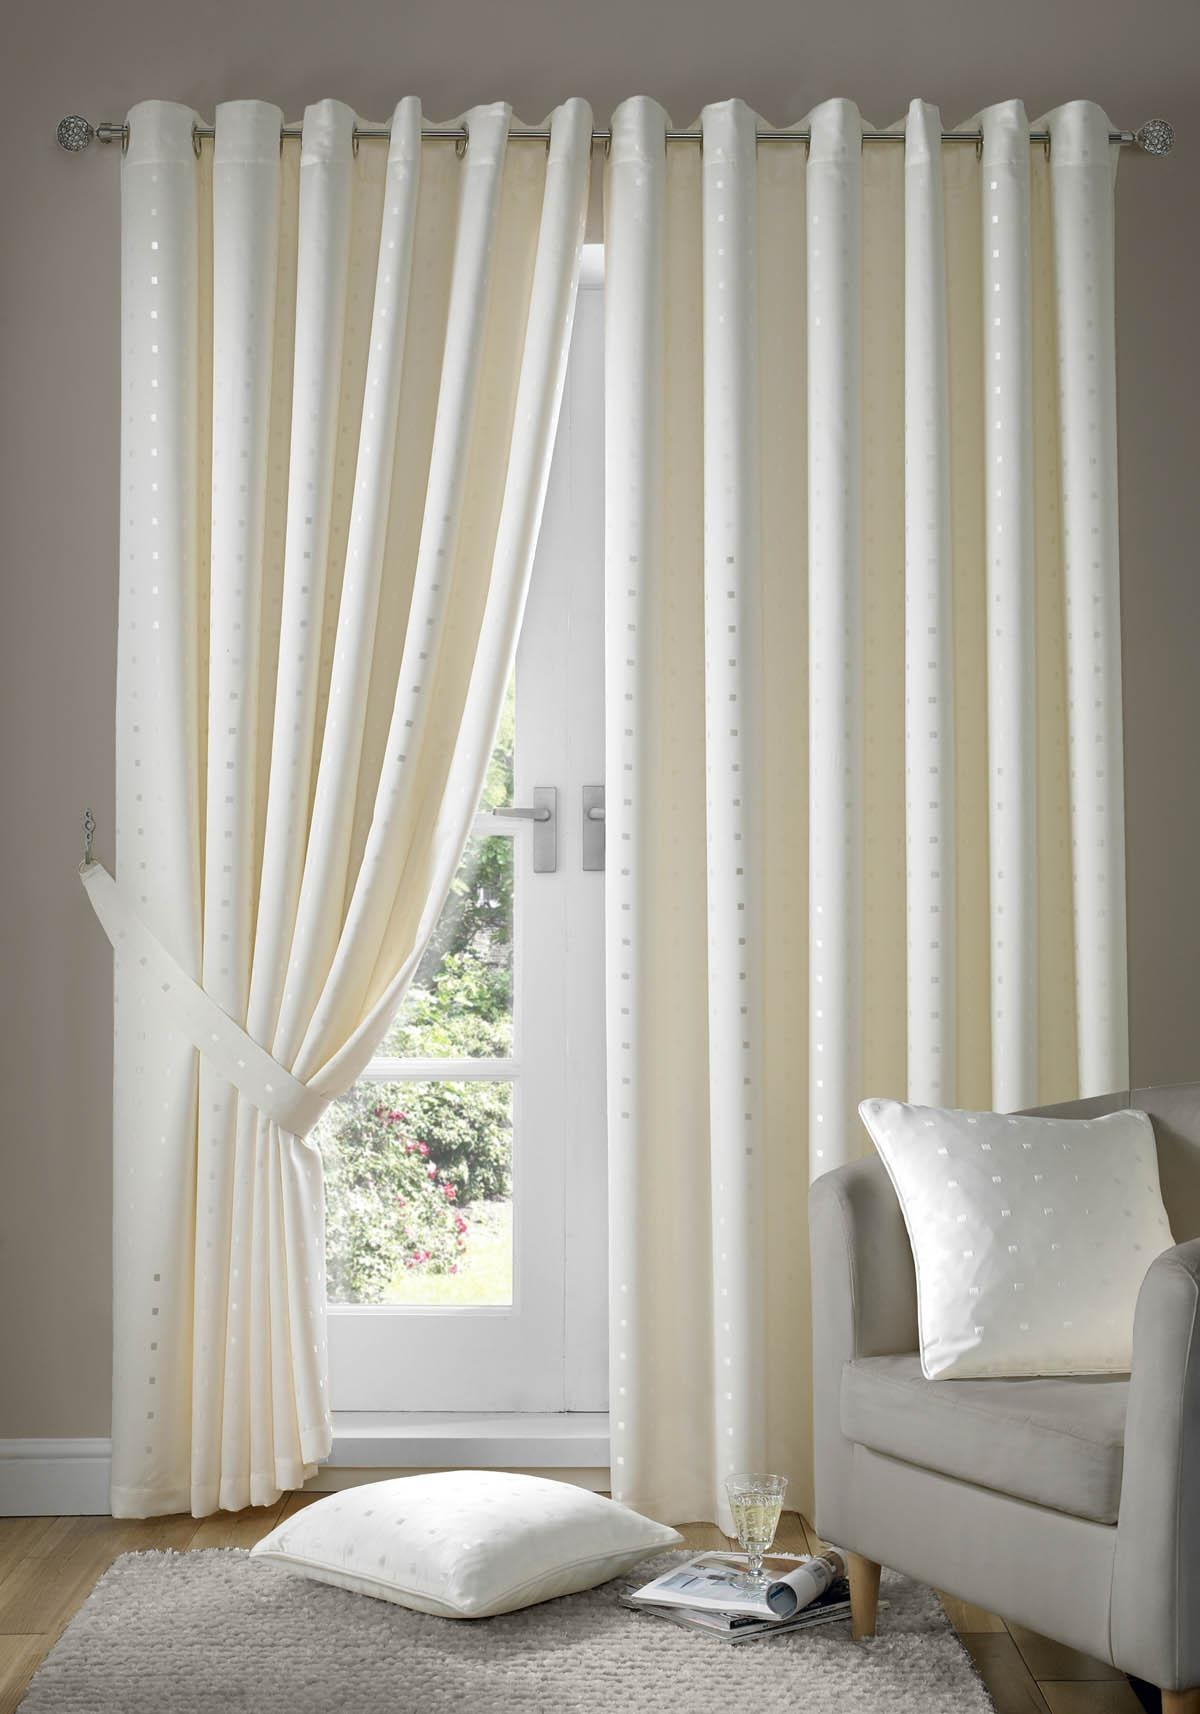 Lined White Curtains Decor Venice Scroll Design Voile Eyelet Dove For Lined Cream Curtains (Image 10 of 15)